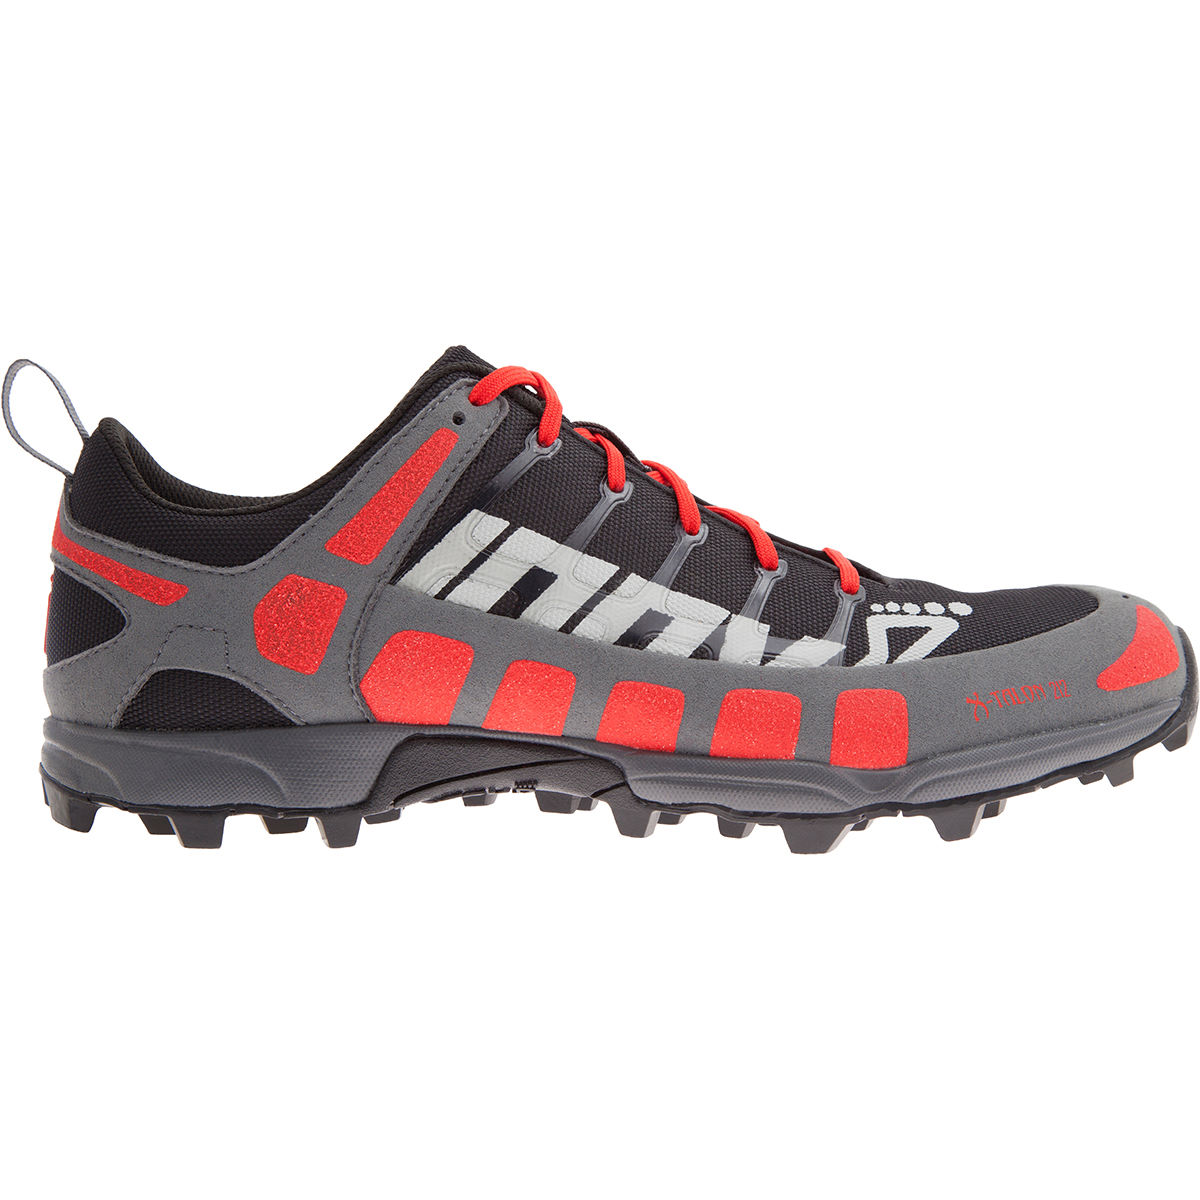 Chaussures Inov-8 X-Talon 212 Precision (AH16) - 11 UK Black/Red/Grey Chaussures de running trail